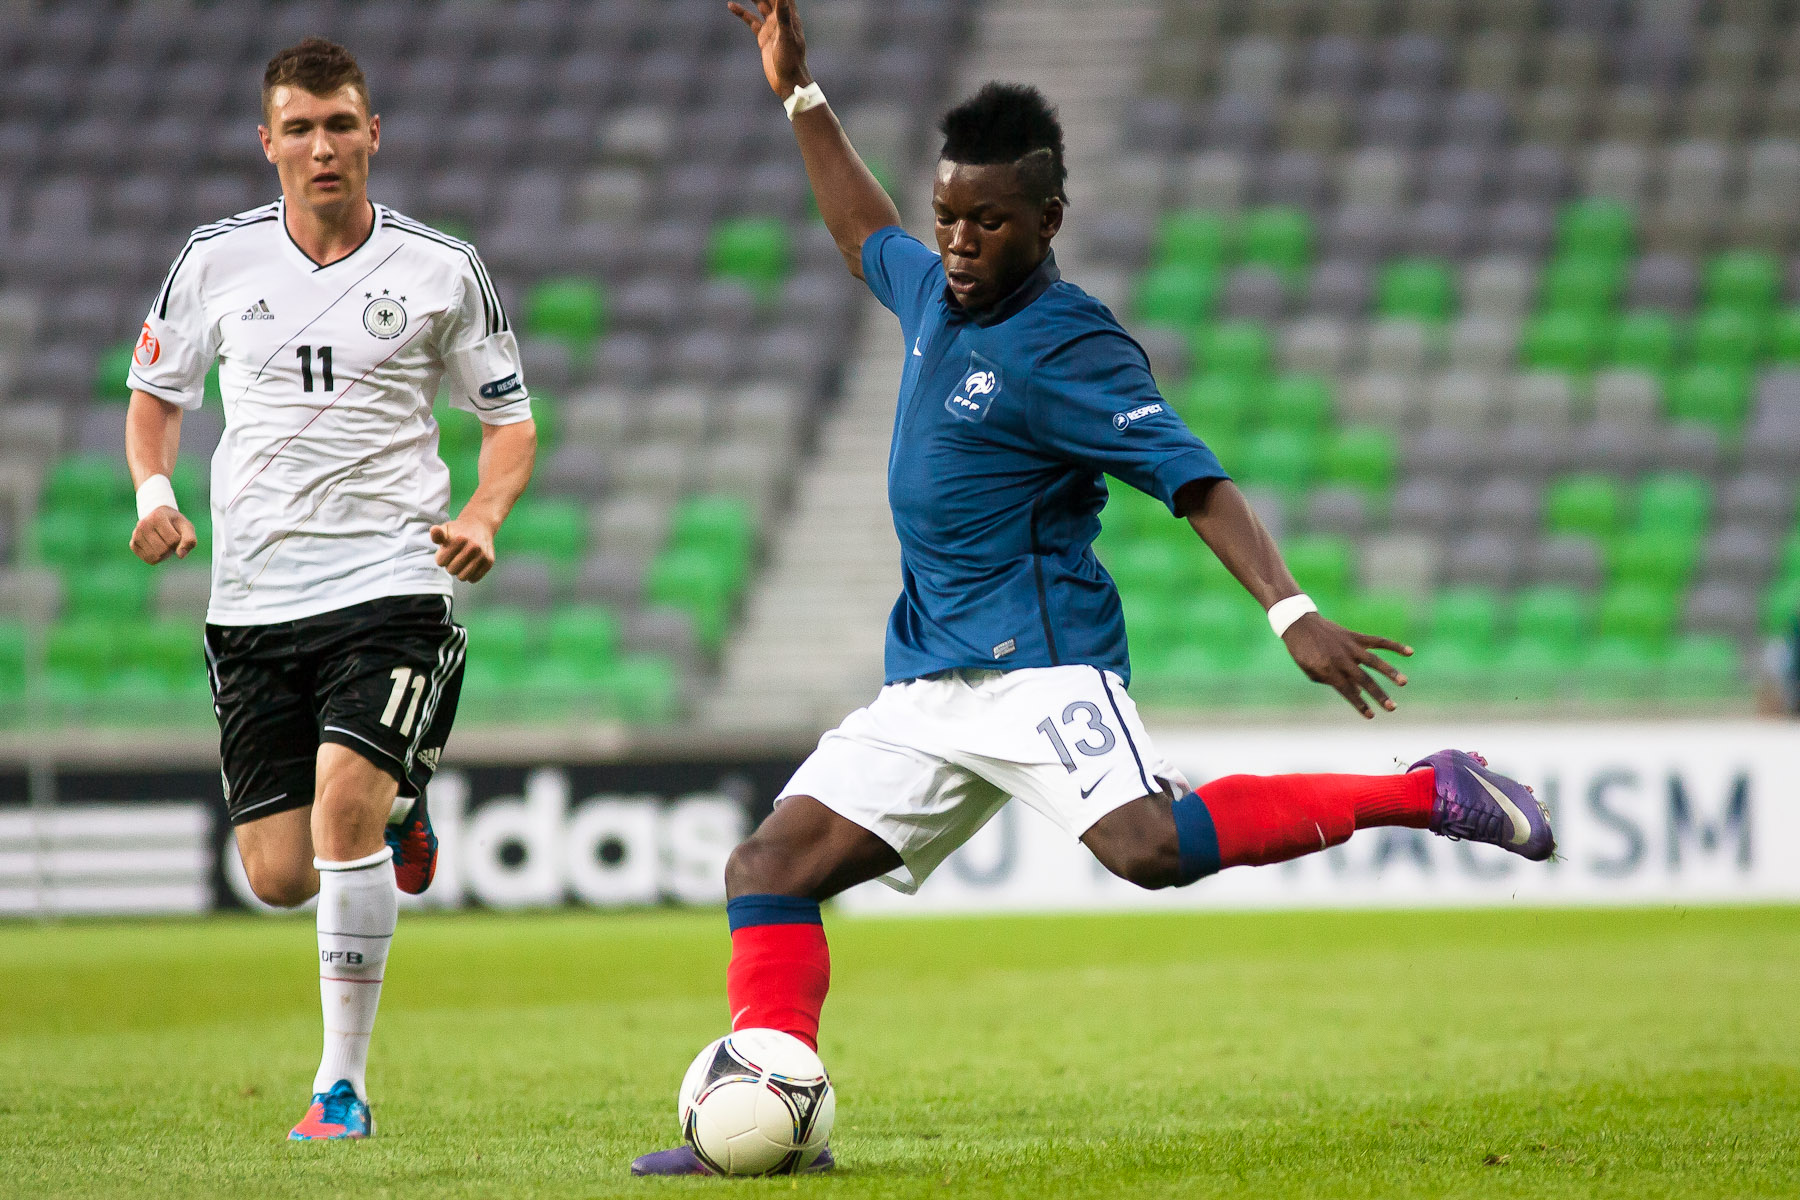 Louis Nganioni of France during the UEFA U-17 European Championship final tournament group match between Germany and France at the SRC Stozice Stadium in Ljubljana, Slovenia, May 10, 2012.